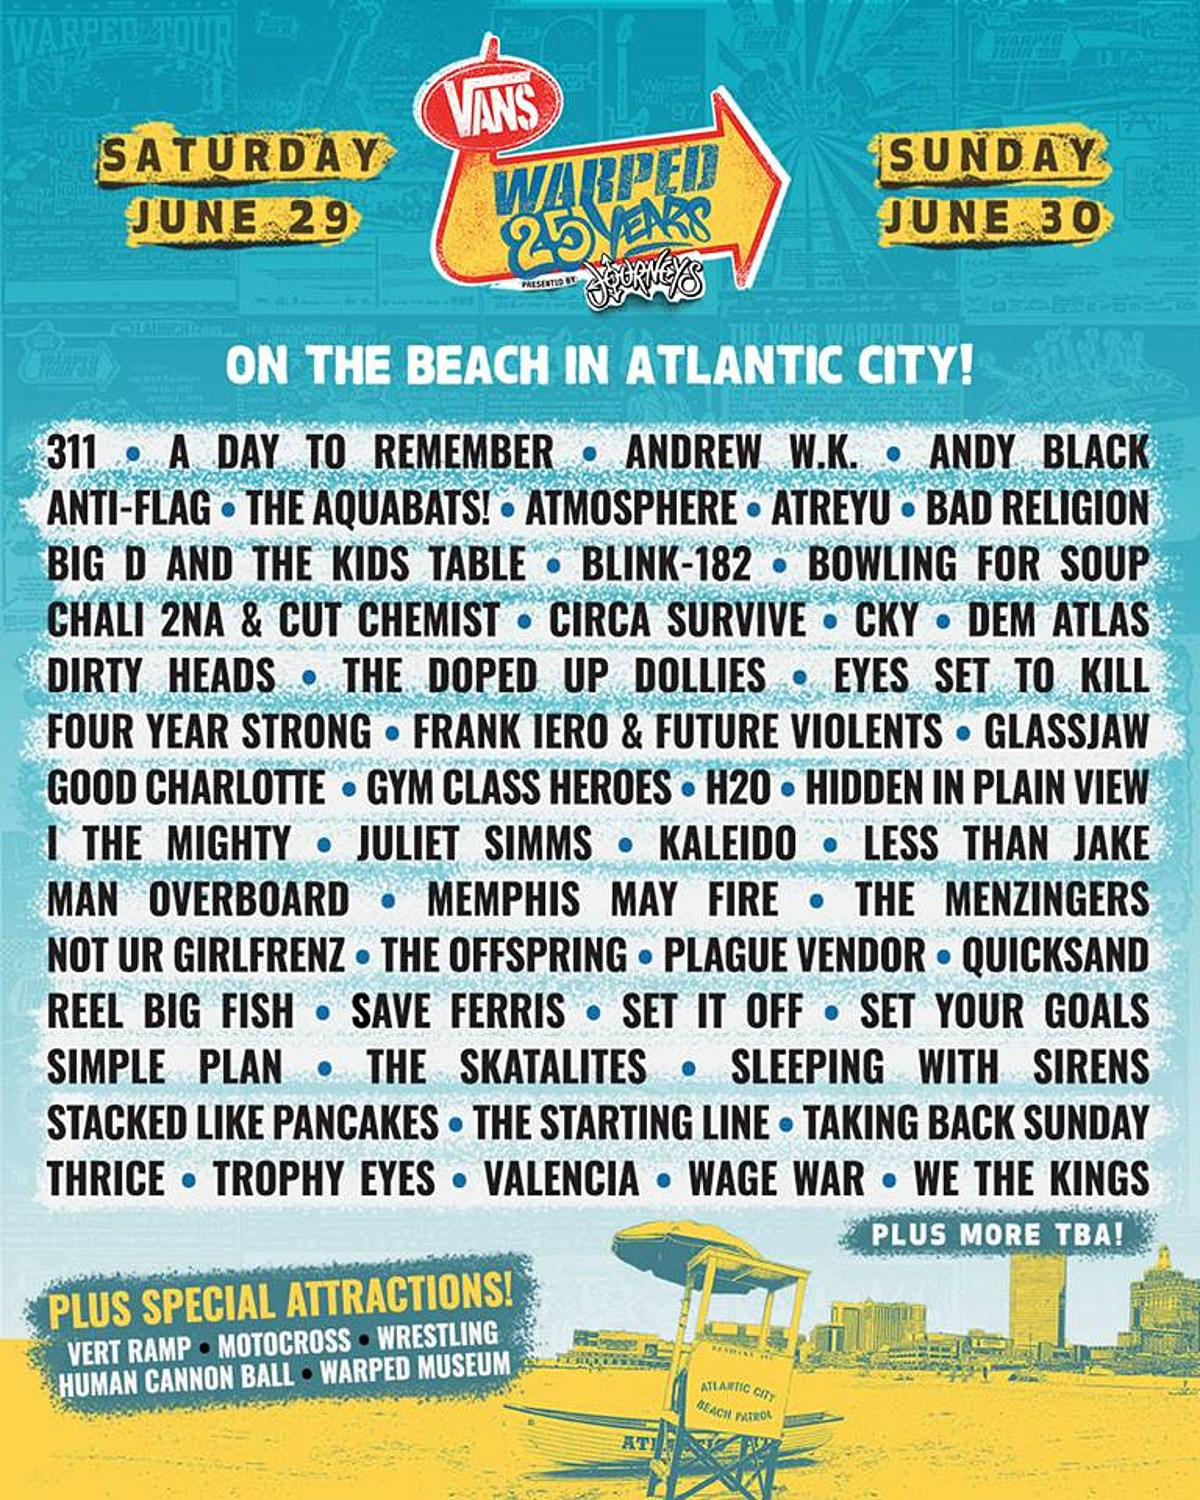 Warped Tour 2019 lineup (Jawbreaker, blink-182, Bad Religion, Quicksand, Glassjaw, Offspring, more)